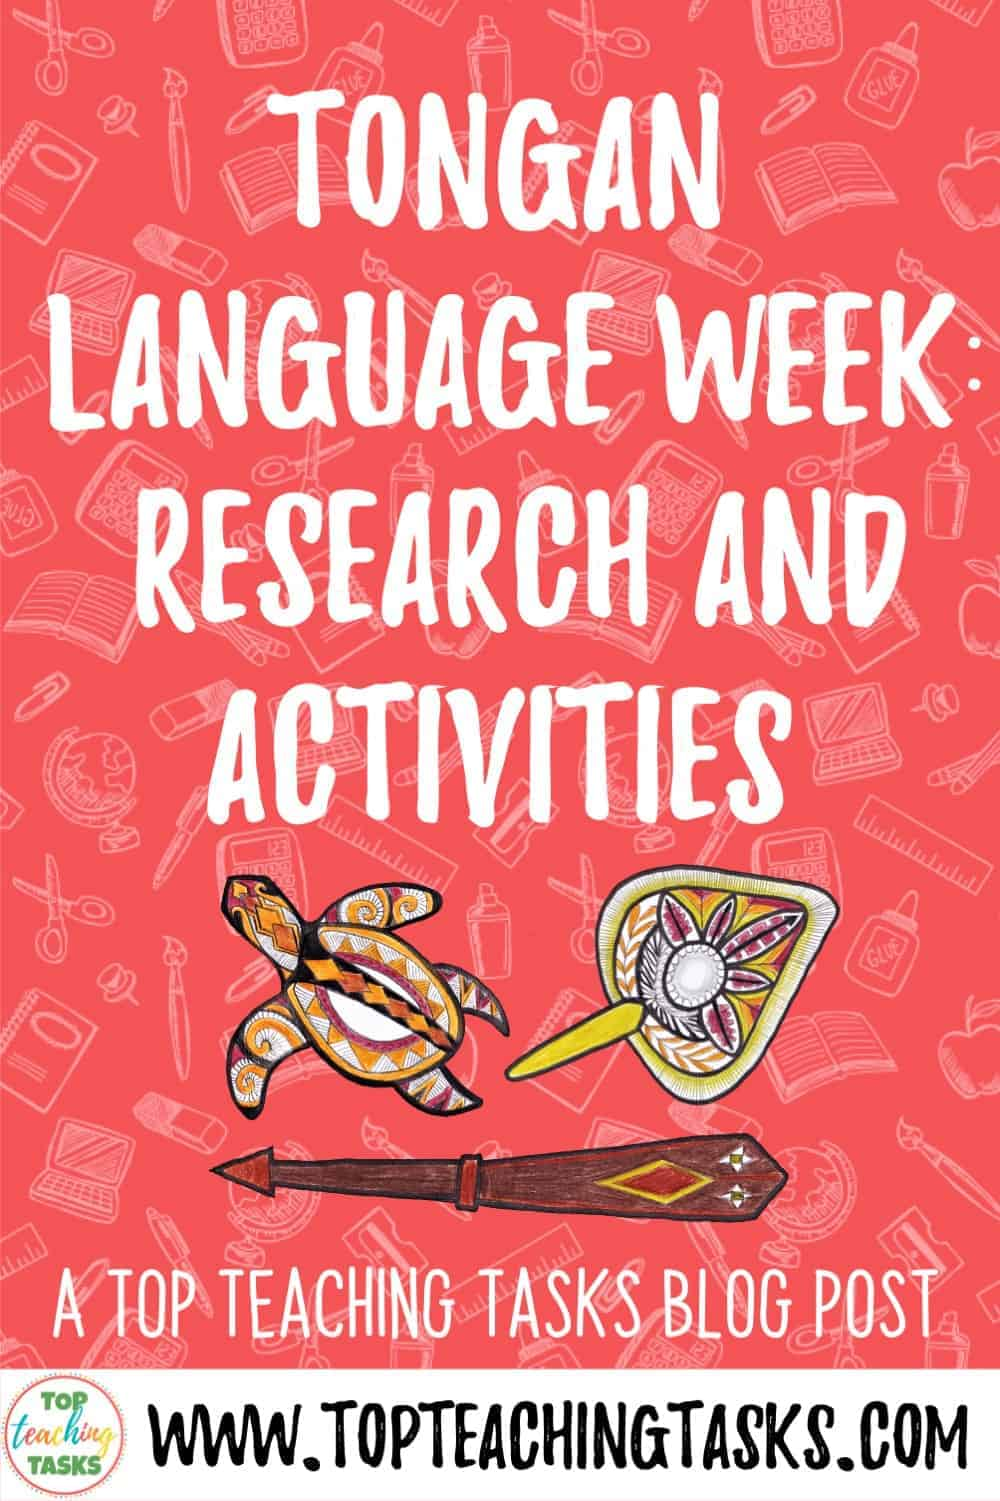 Tonga Language Week research and activities. Mālō e lelei! Mālō e lelei! Tongan Language Week - Uike Kātoanga'i 'o e Lea Faka-Tonga is coming up from Sunday 6 September - Saturday 12 September in 2020. This blog post highlights some exciting resources I have so you can explore the Tongan culture and language in your classroom during Tongan Language Week and throughout the rest of the year.